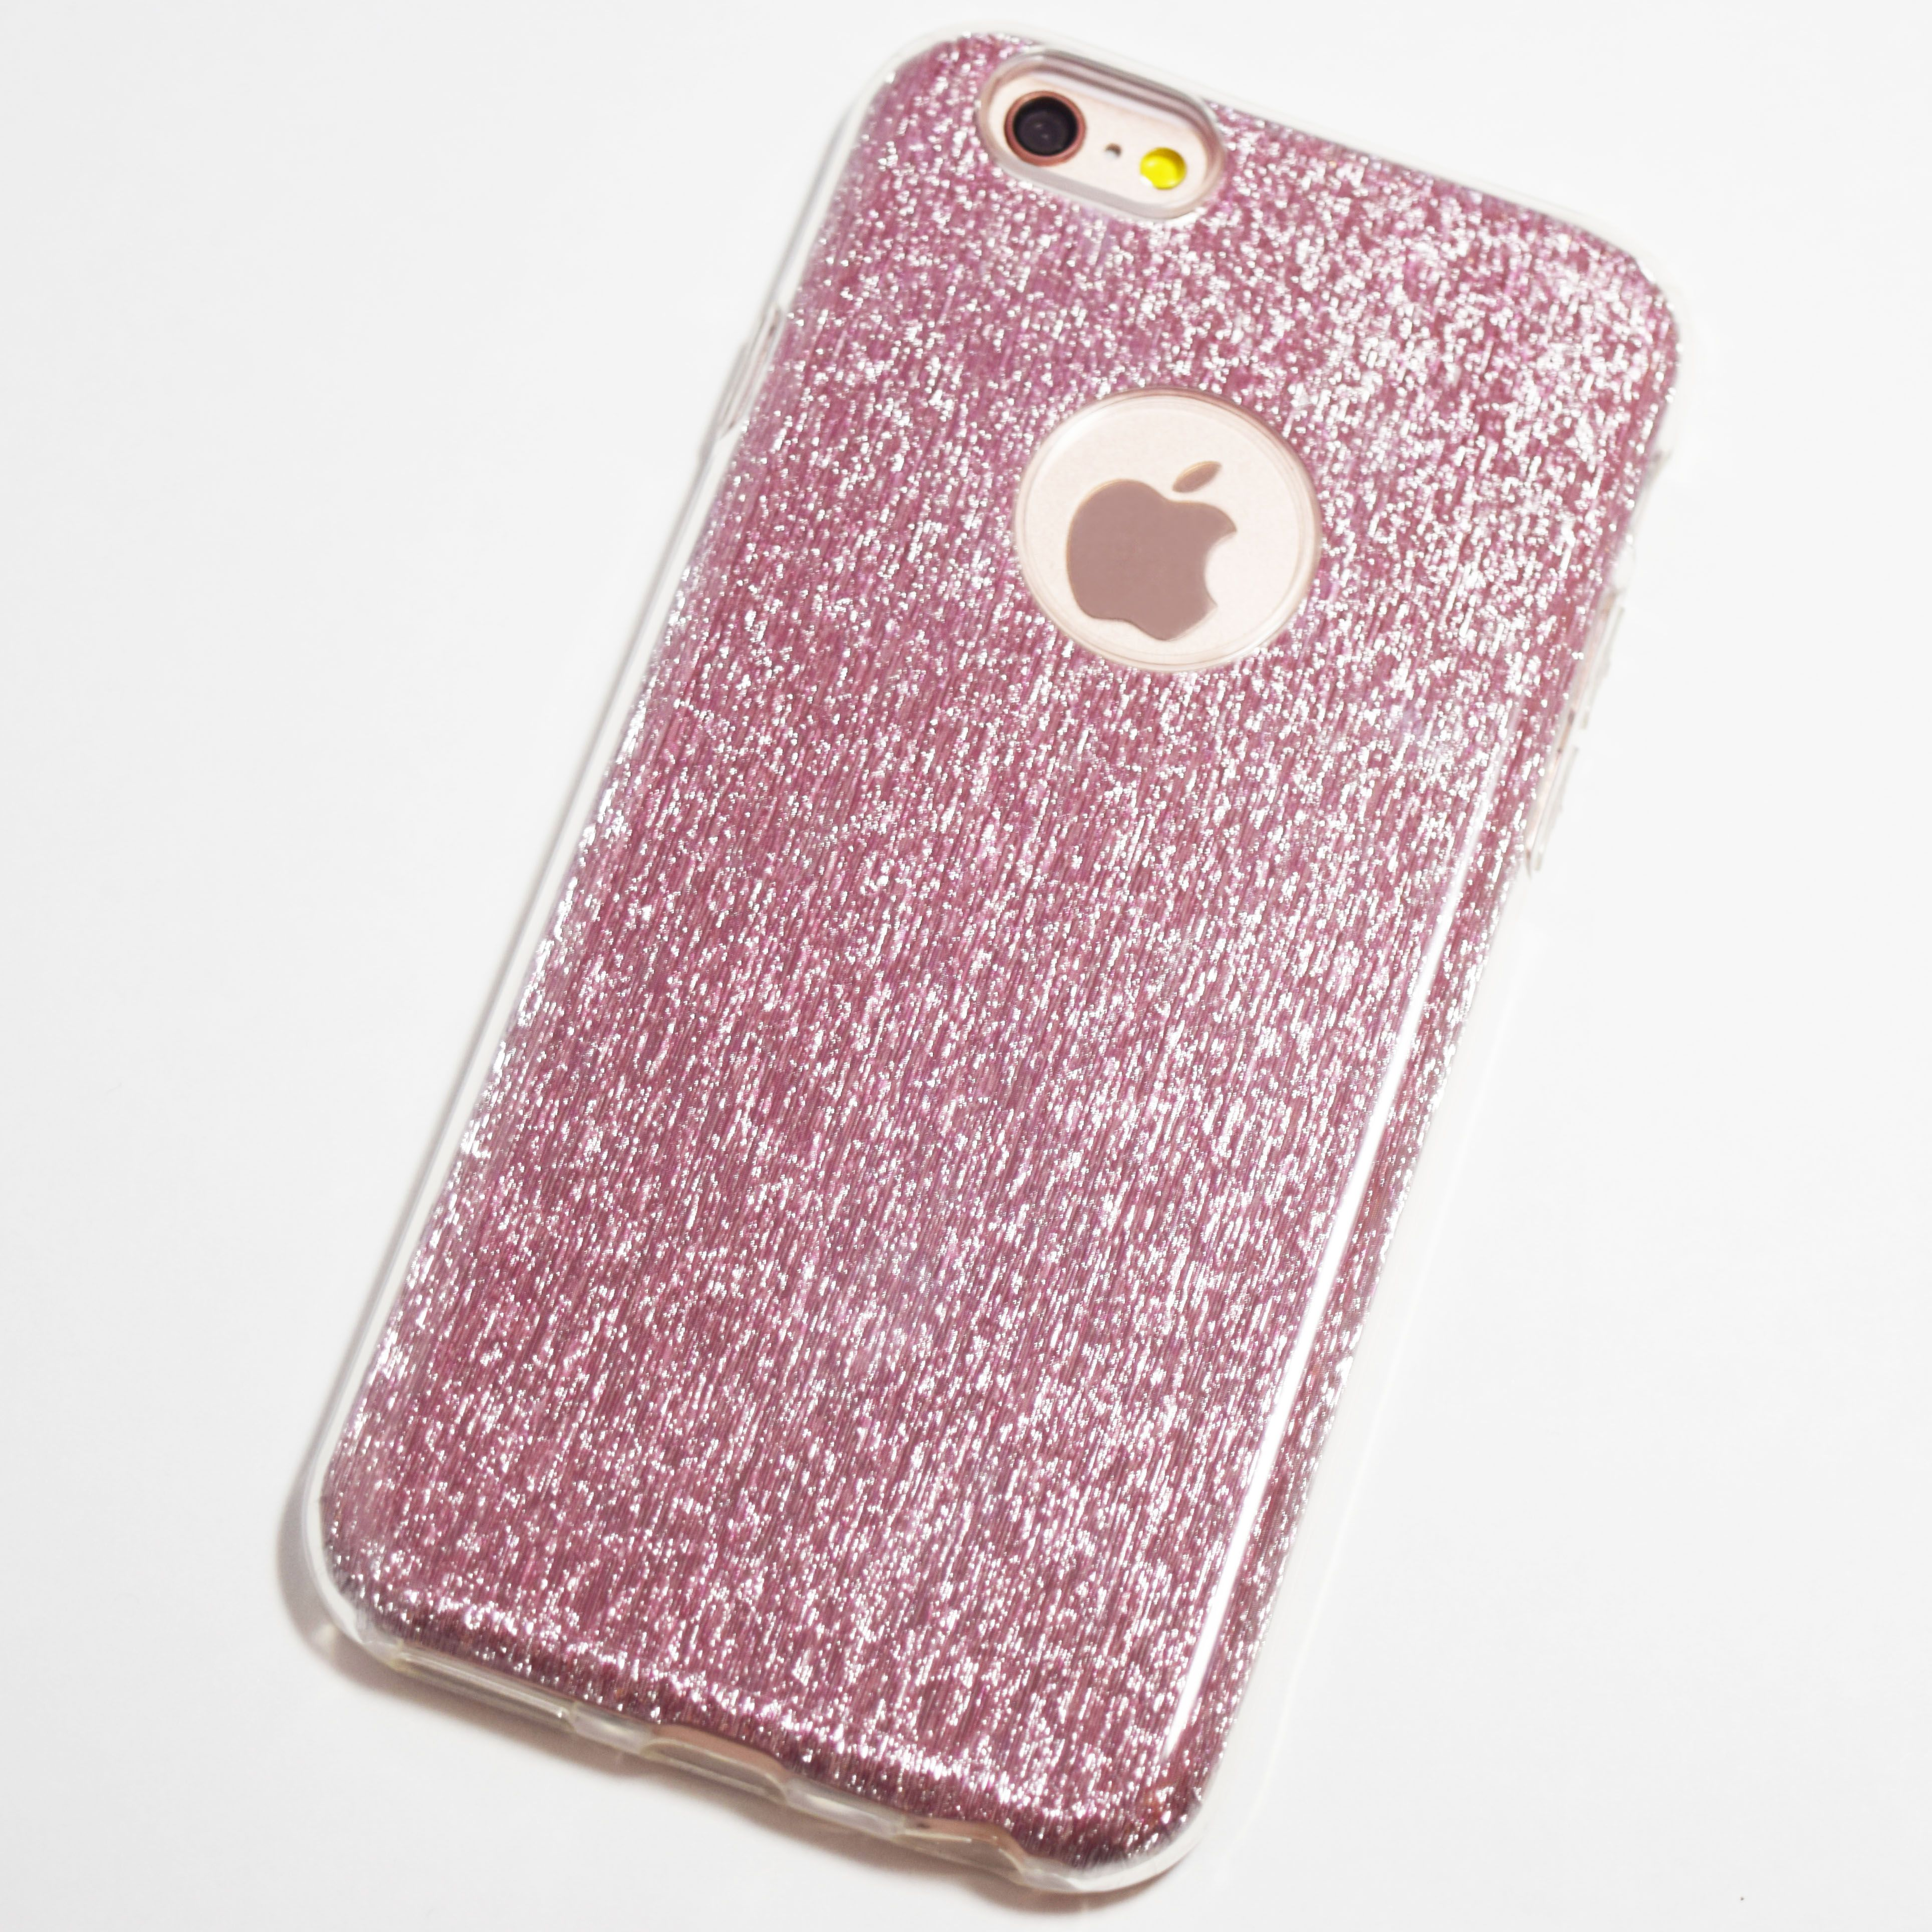 sparkly iphone 6 case